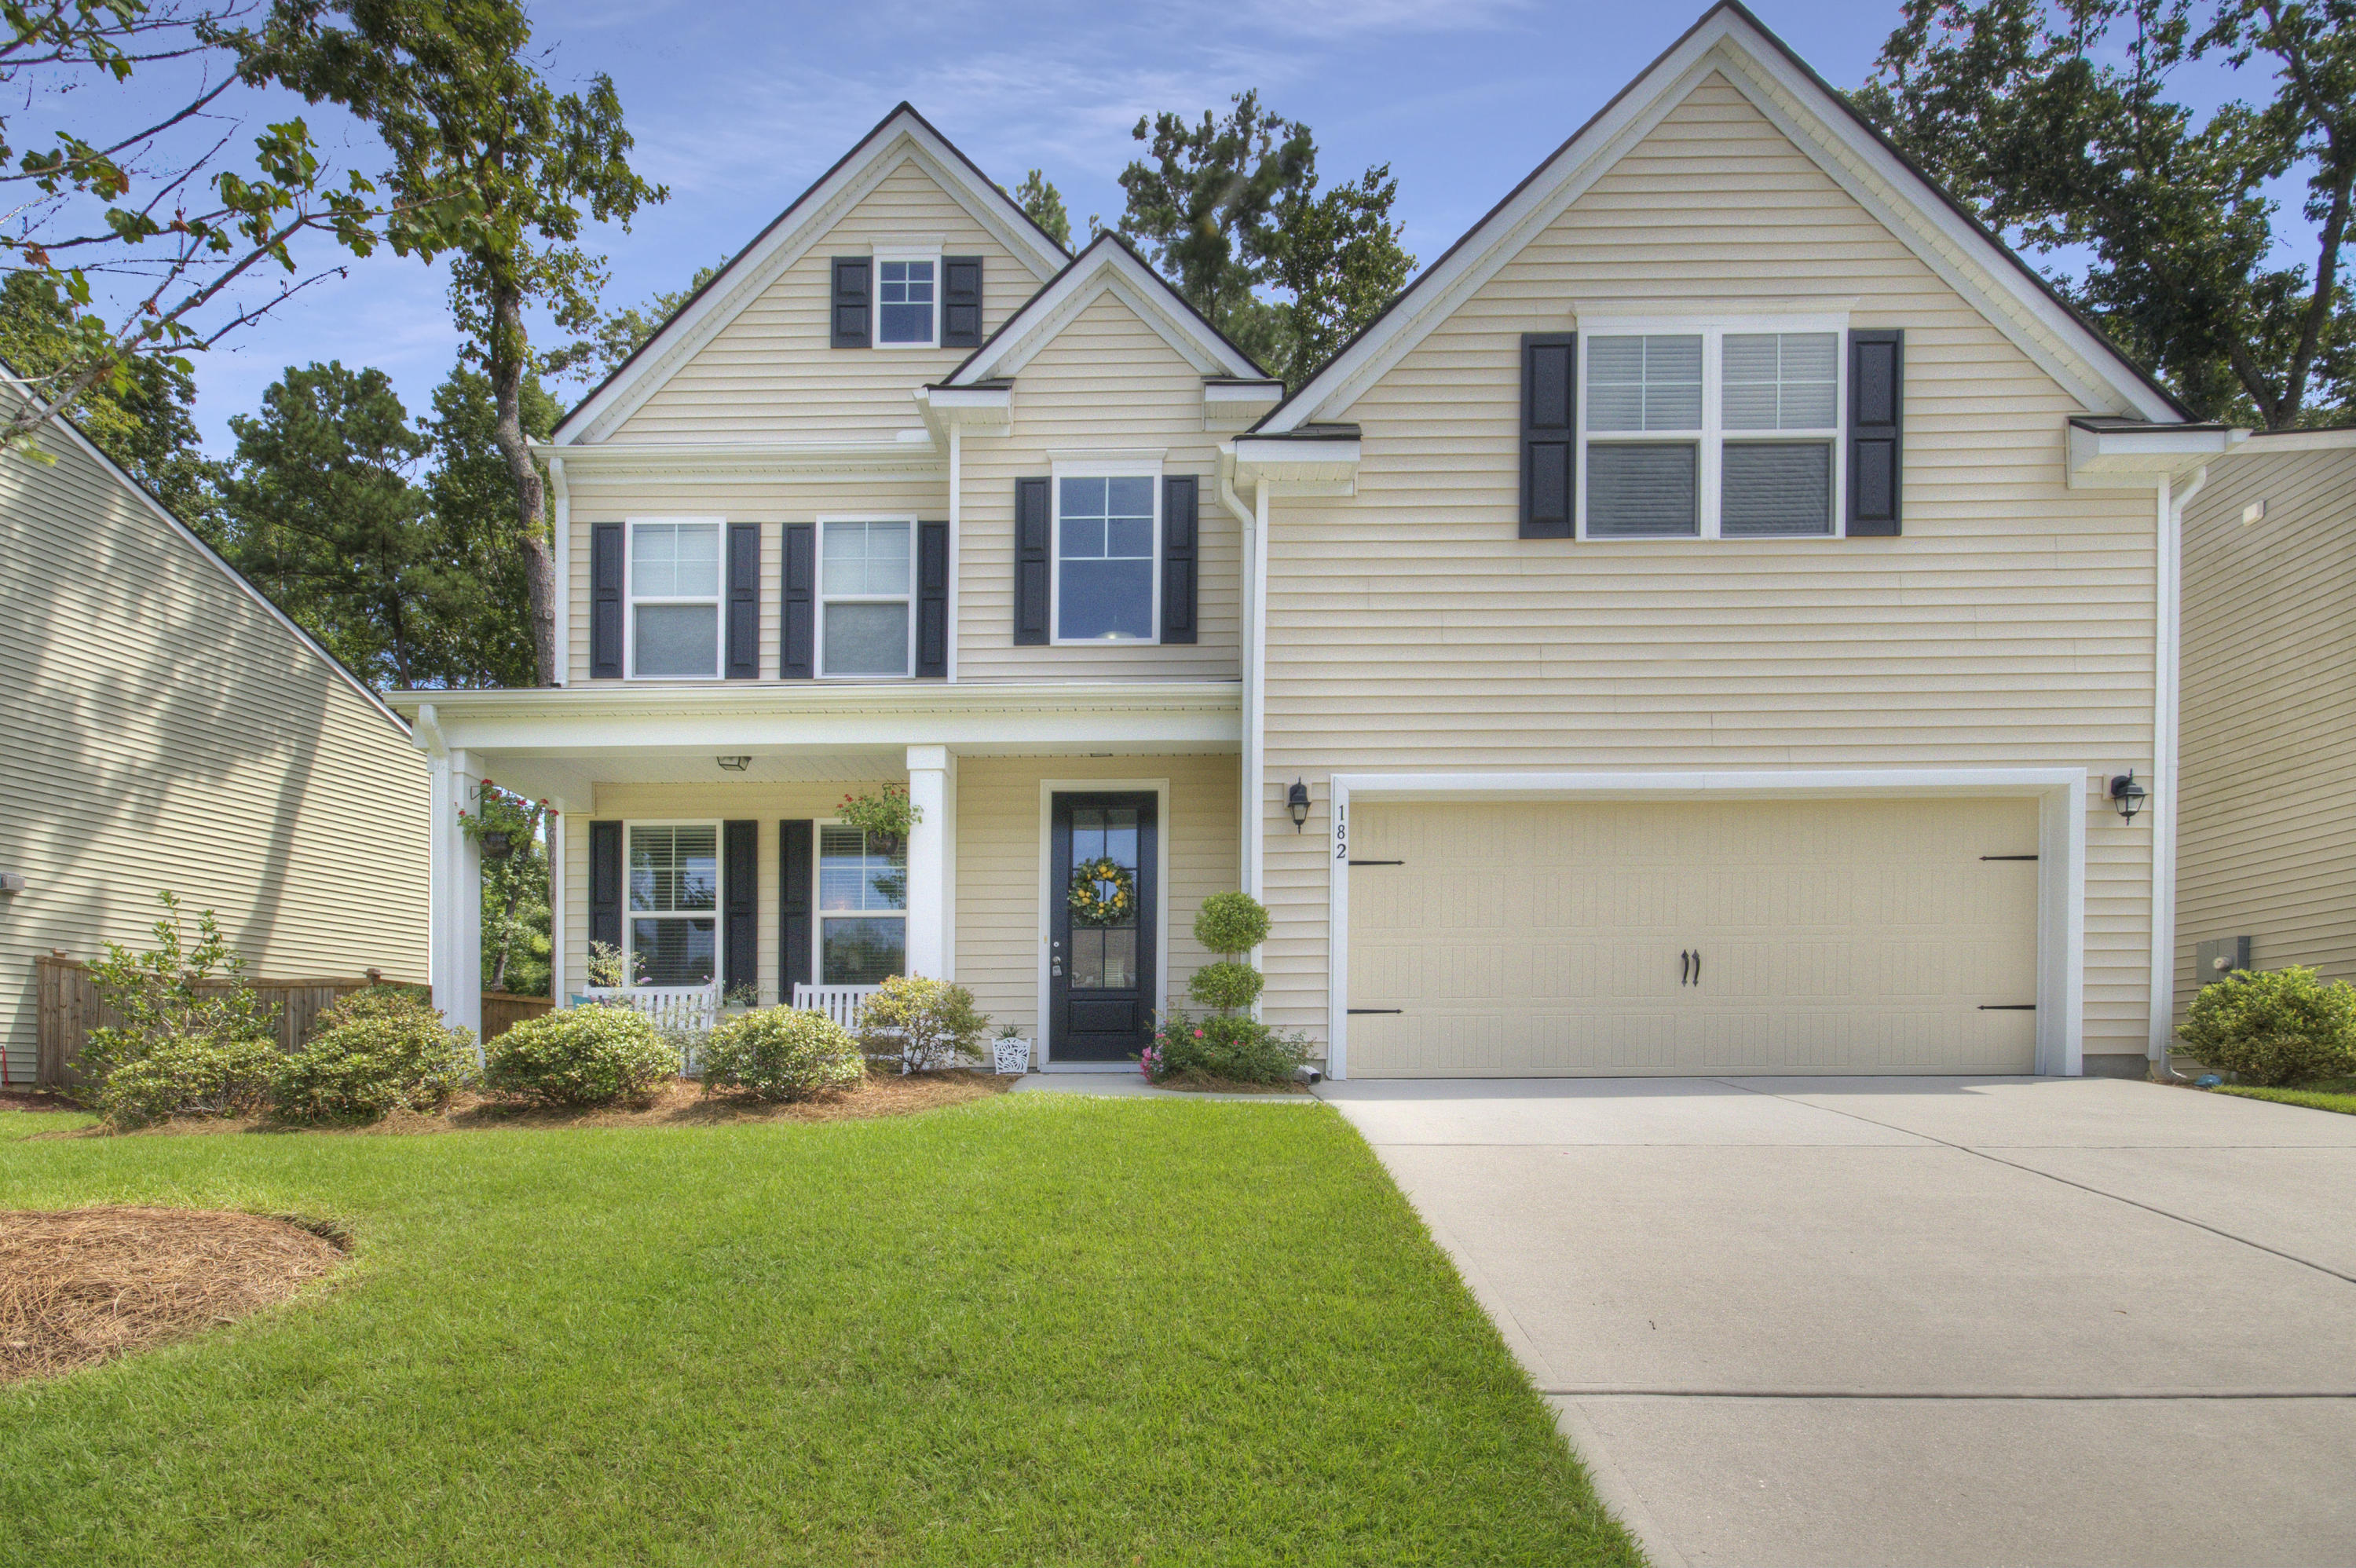 182 Hickory Ridge Way Summerville, SC 29483